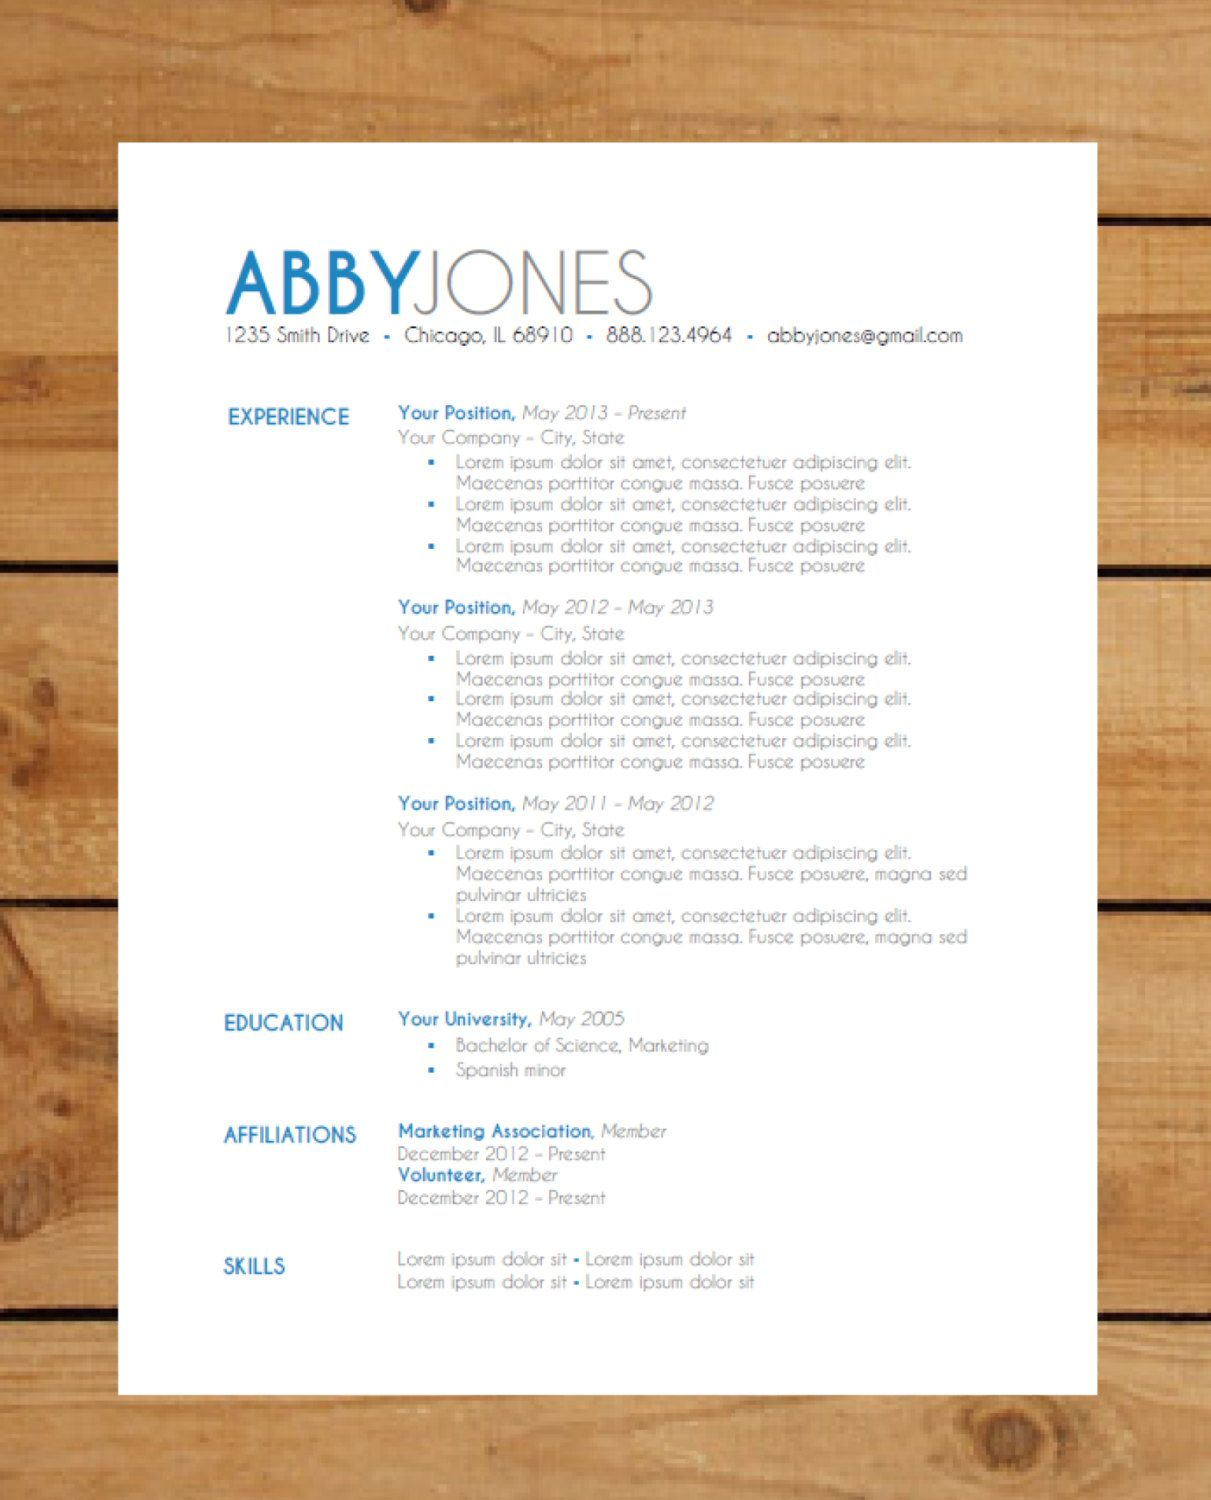 contemporary resume templates free resume templates and resume 8a71dd3b798e84e22f9233b2b14a0529 contemporary resume templates freehtml